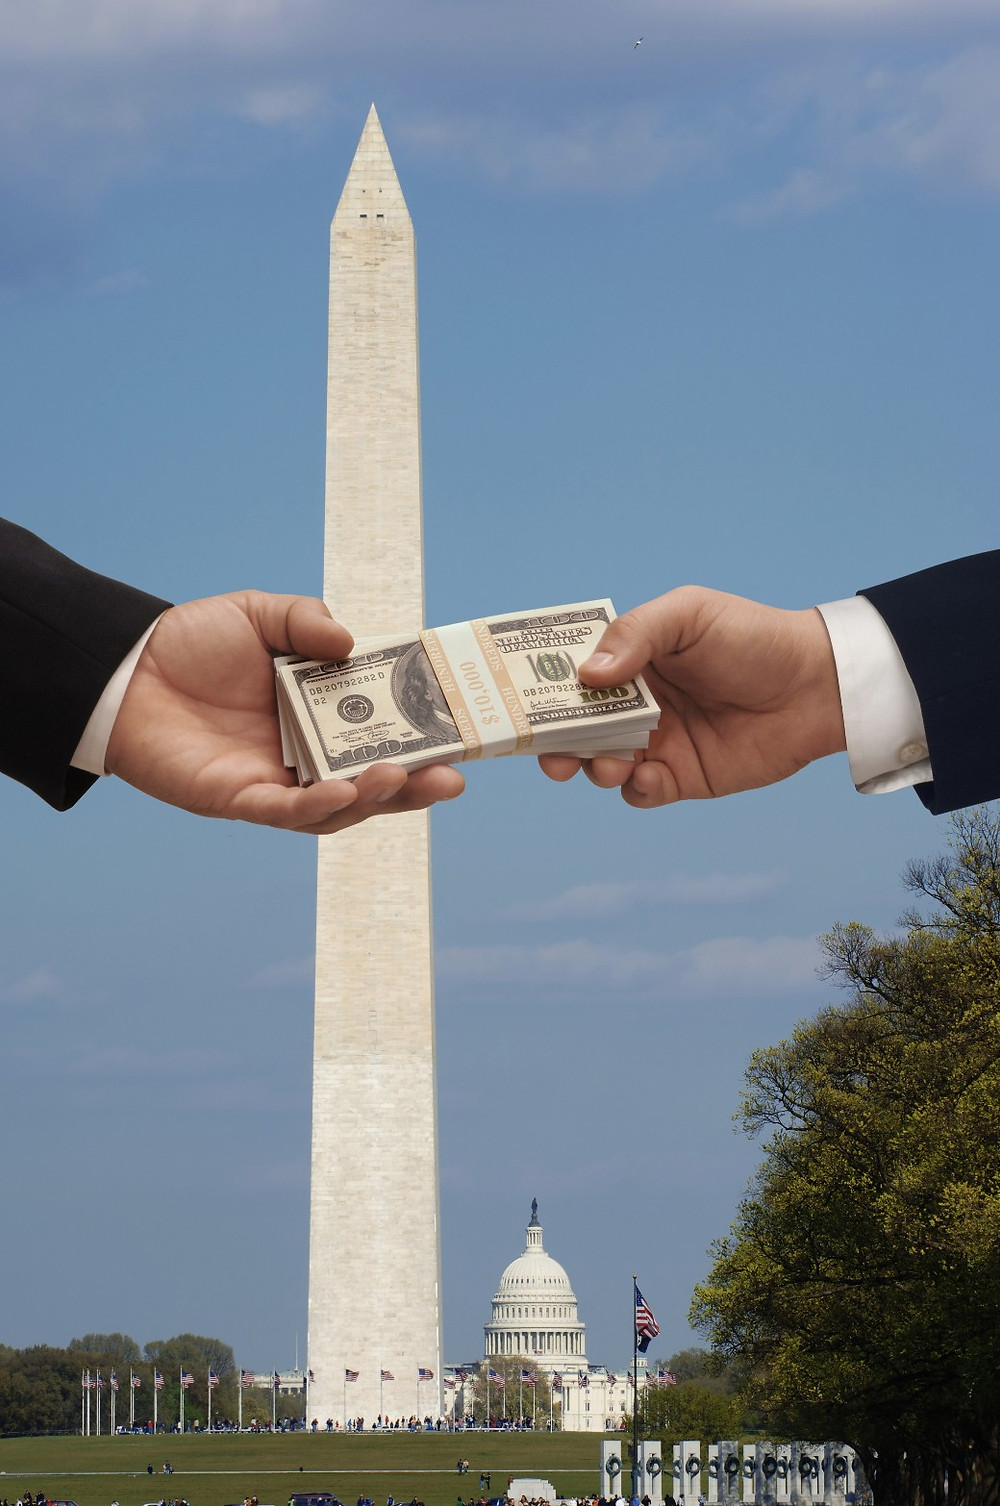 A lobbyist gives money to a Congressman for a political bribe. Contrary to public opinion, lobbying is not bribery.